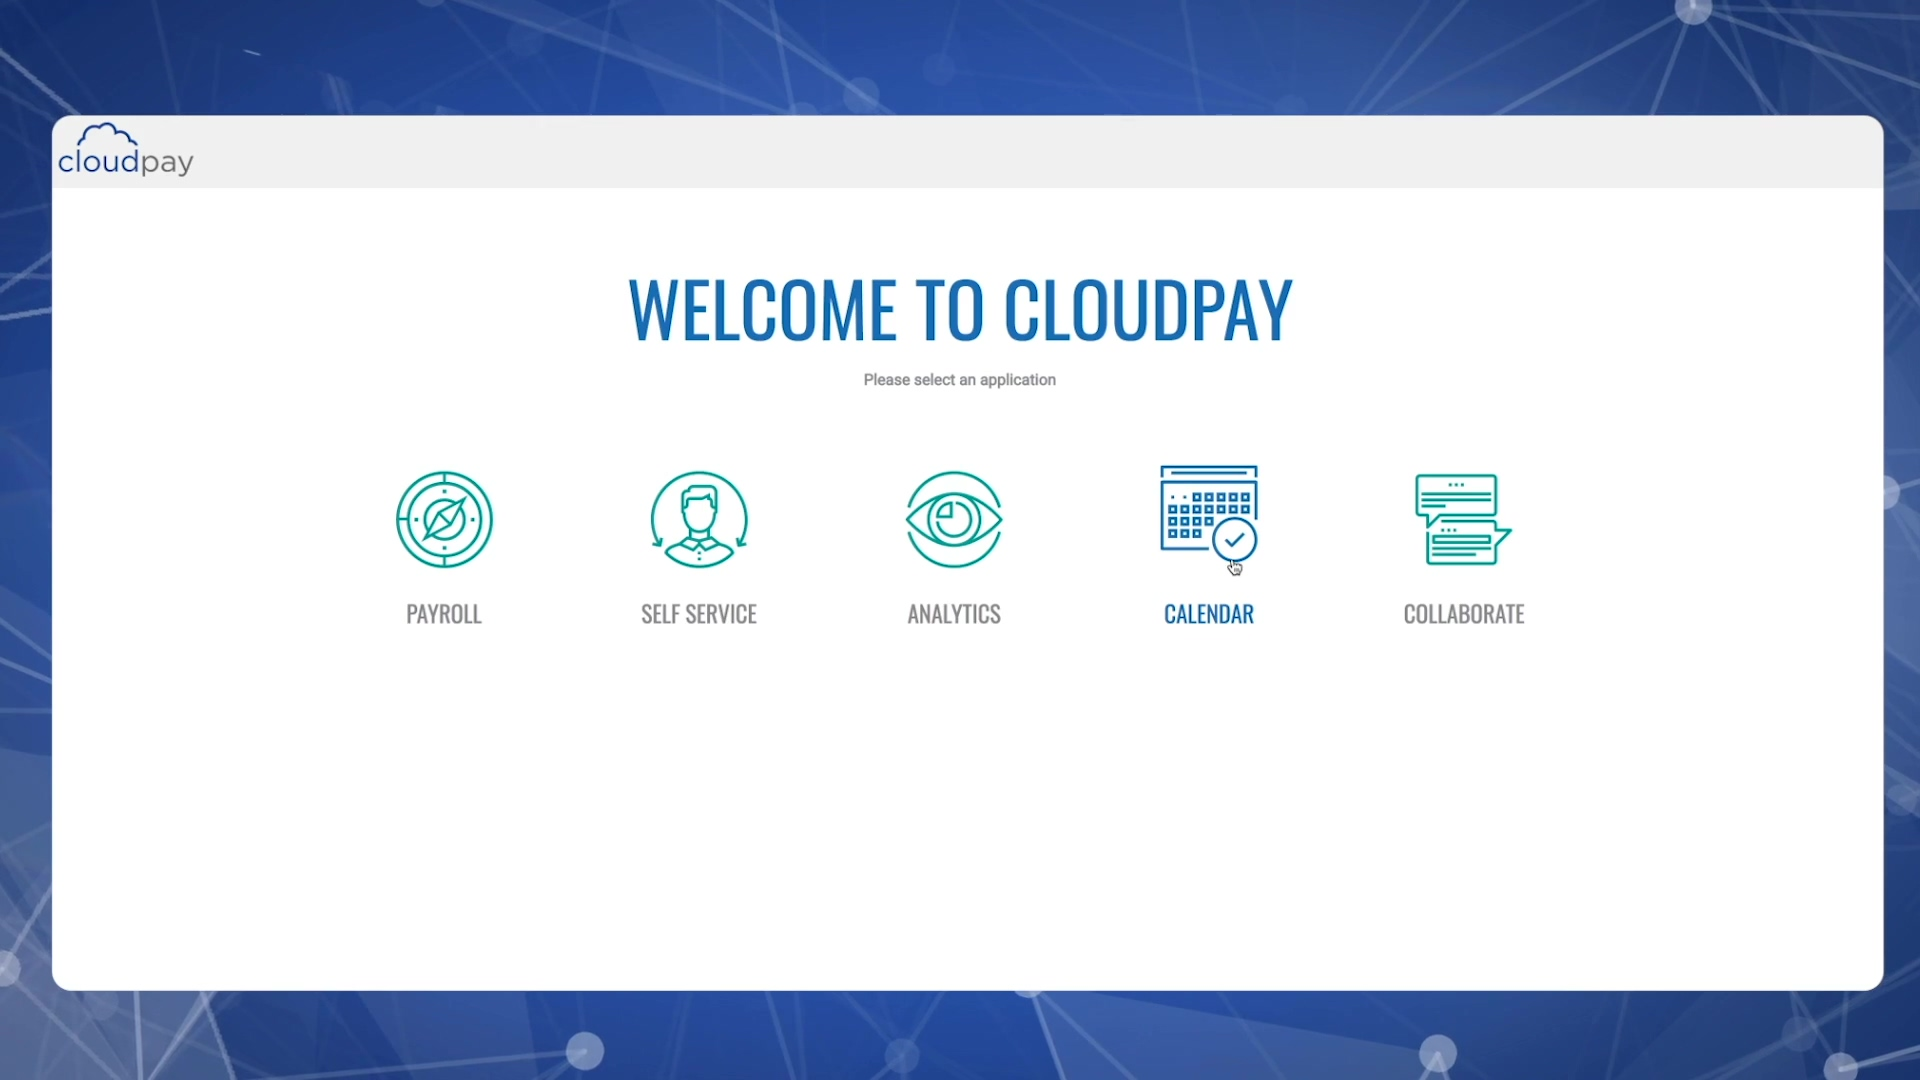 CloudPay Platform - End-to-End Video